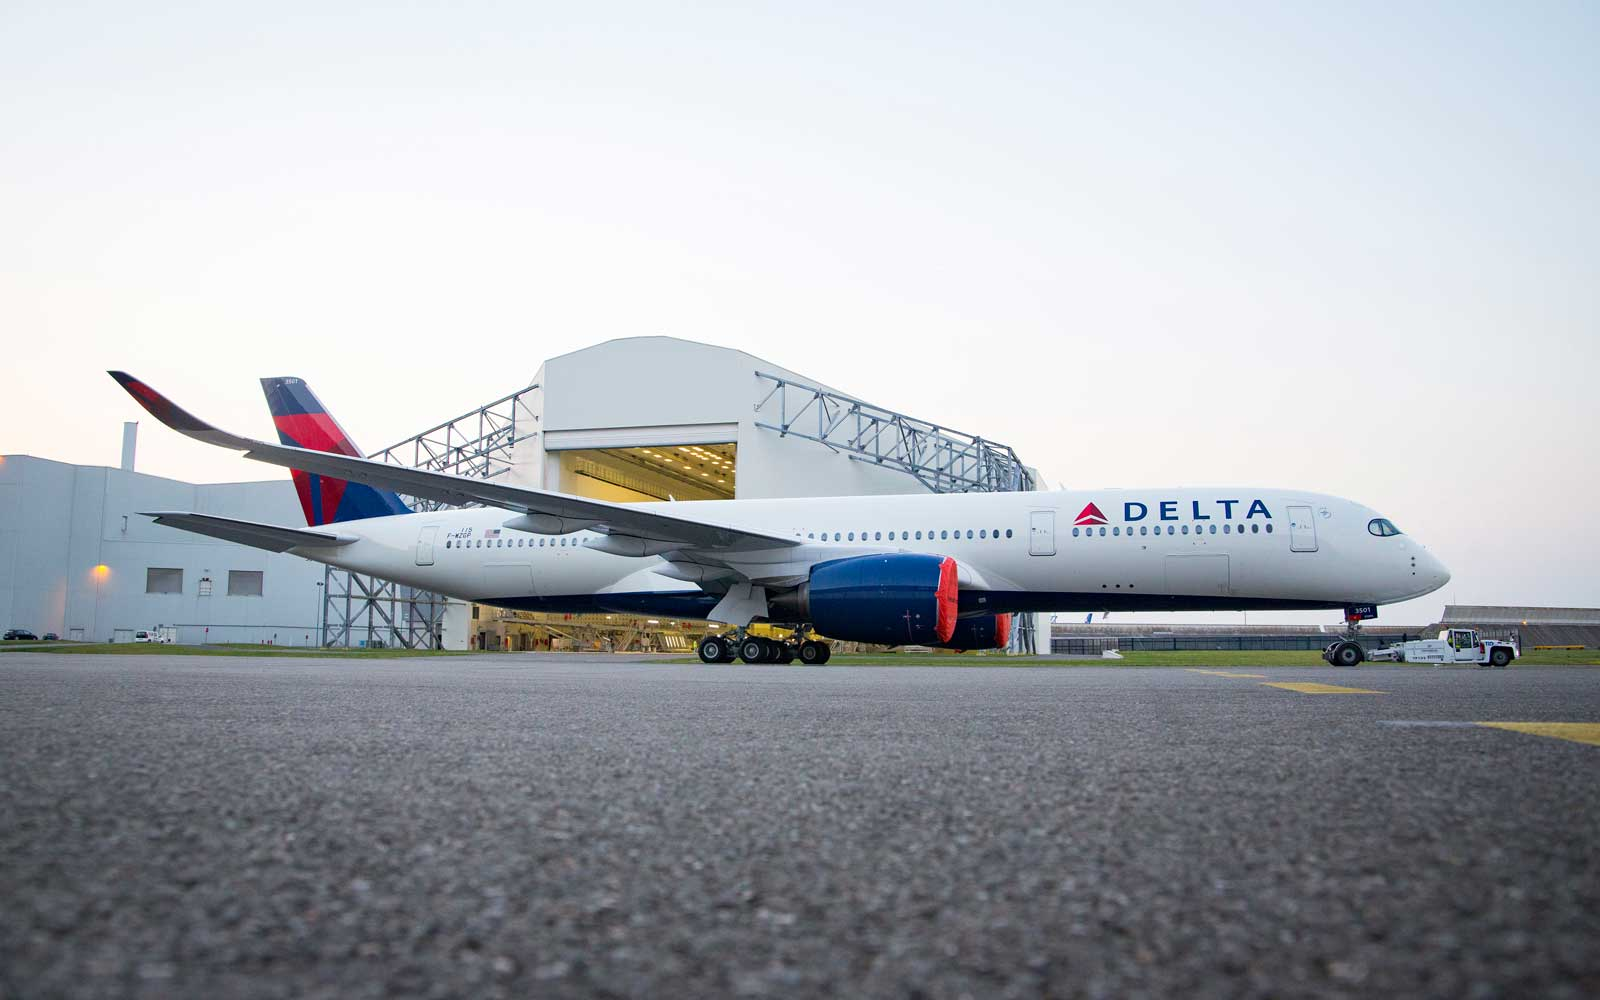 A freshly painted Delta airbus A350-900